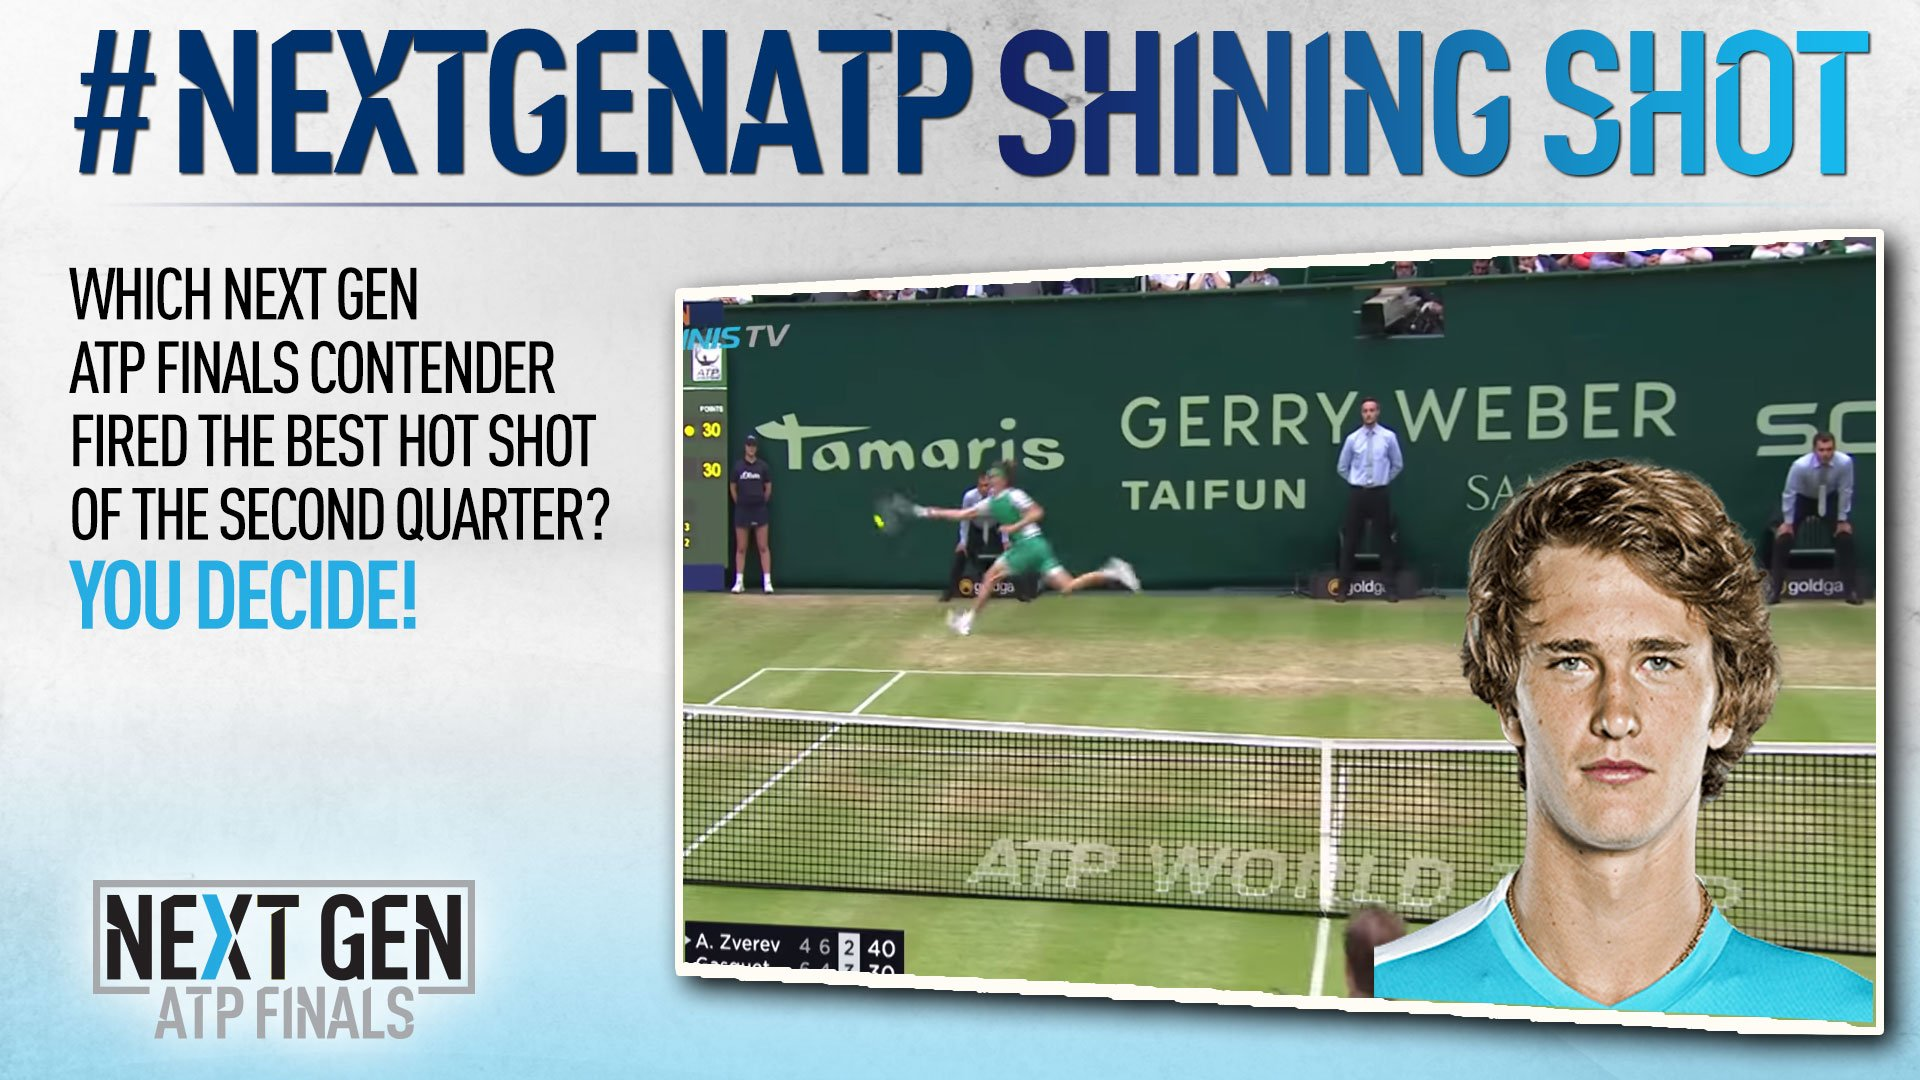 Sascha #Zverev is voted your favourite shot in the #NextGenATP Shining Shot Q2 poll. More: https://t.co/wUfQS1eSQd https://t.co/AdNhZtfcTv